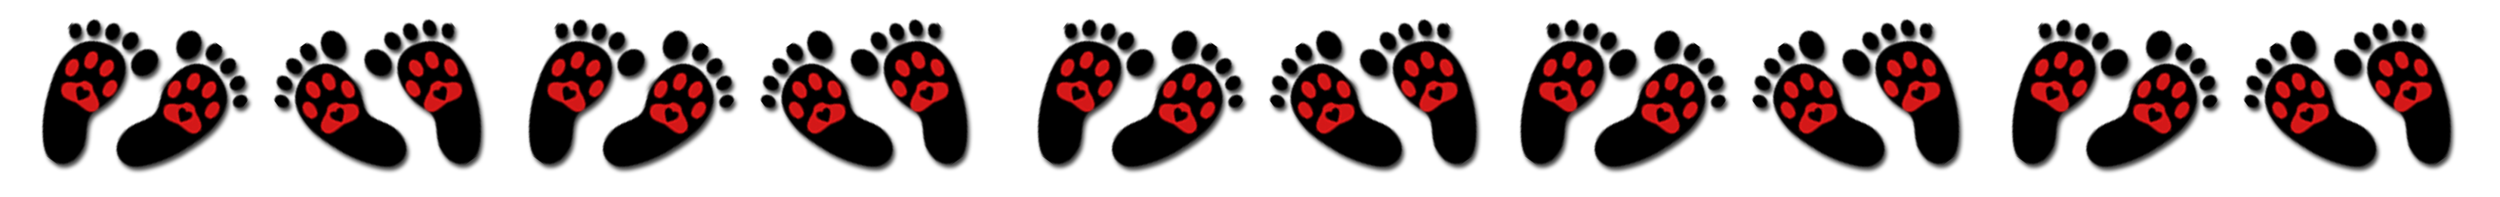 people paws line.png